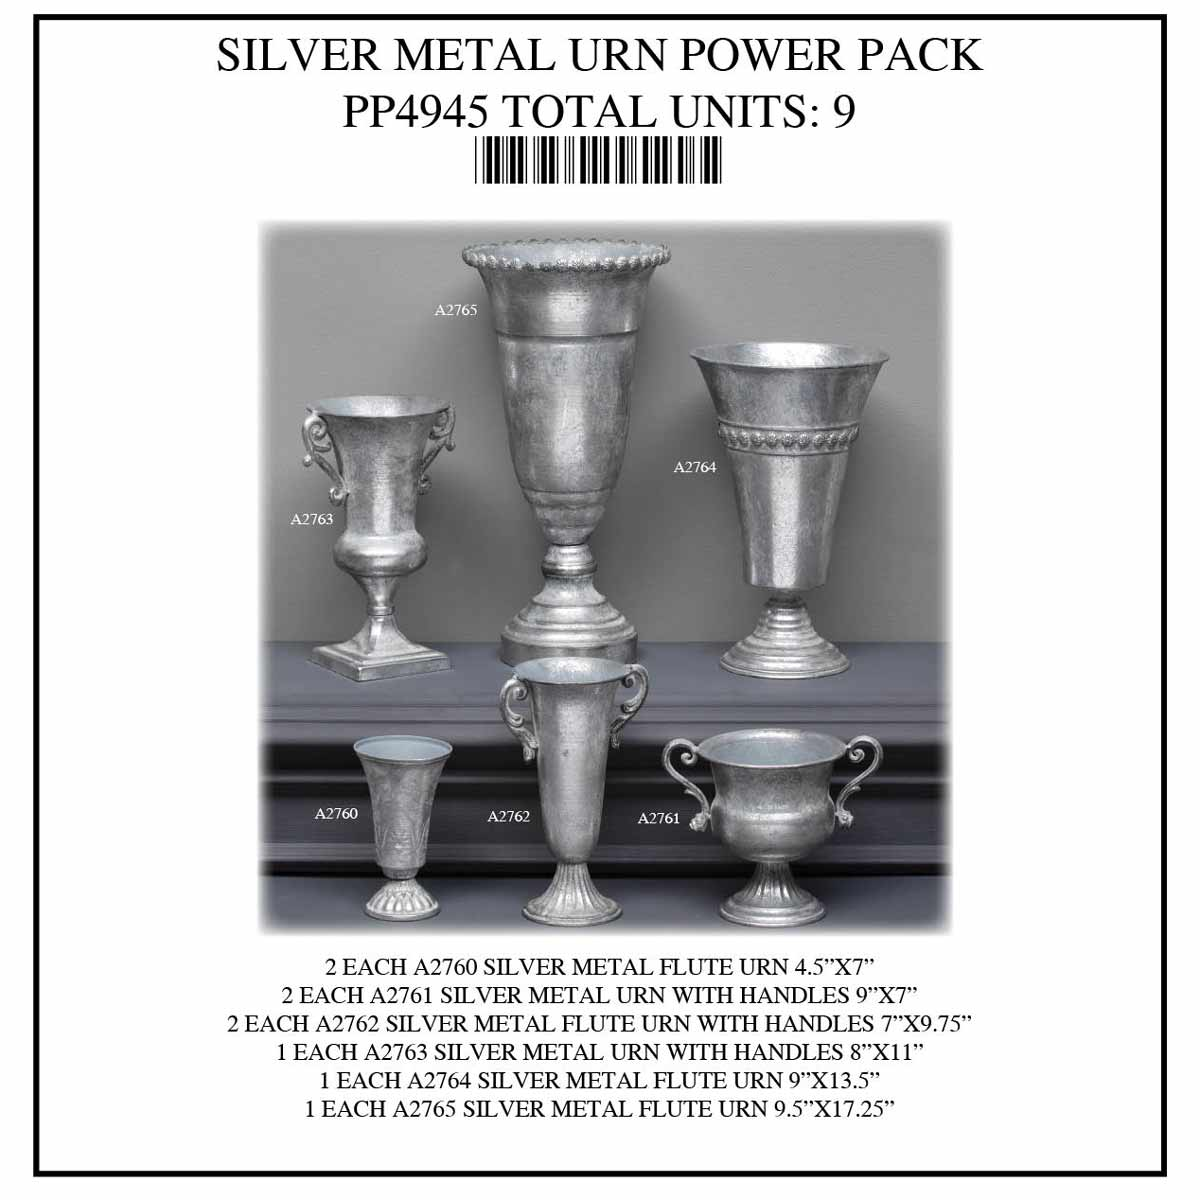 ANTIQUE METAL URN POWER PACK 9 UNITS PP4945